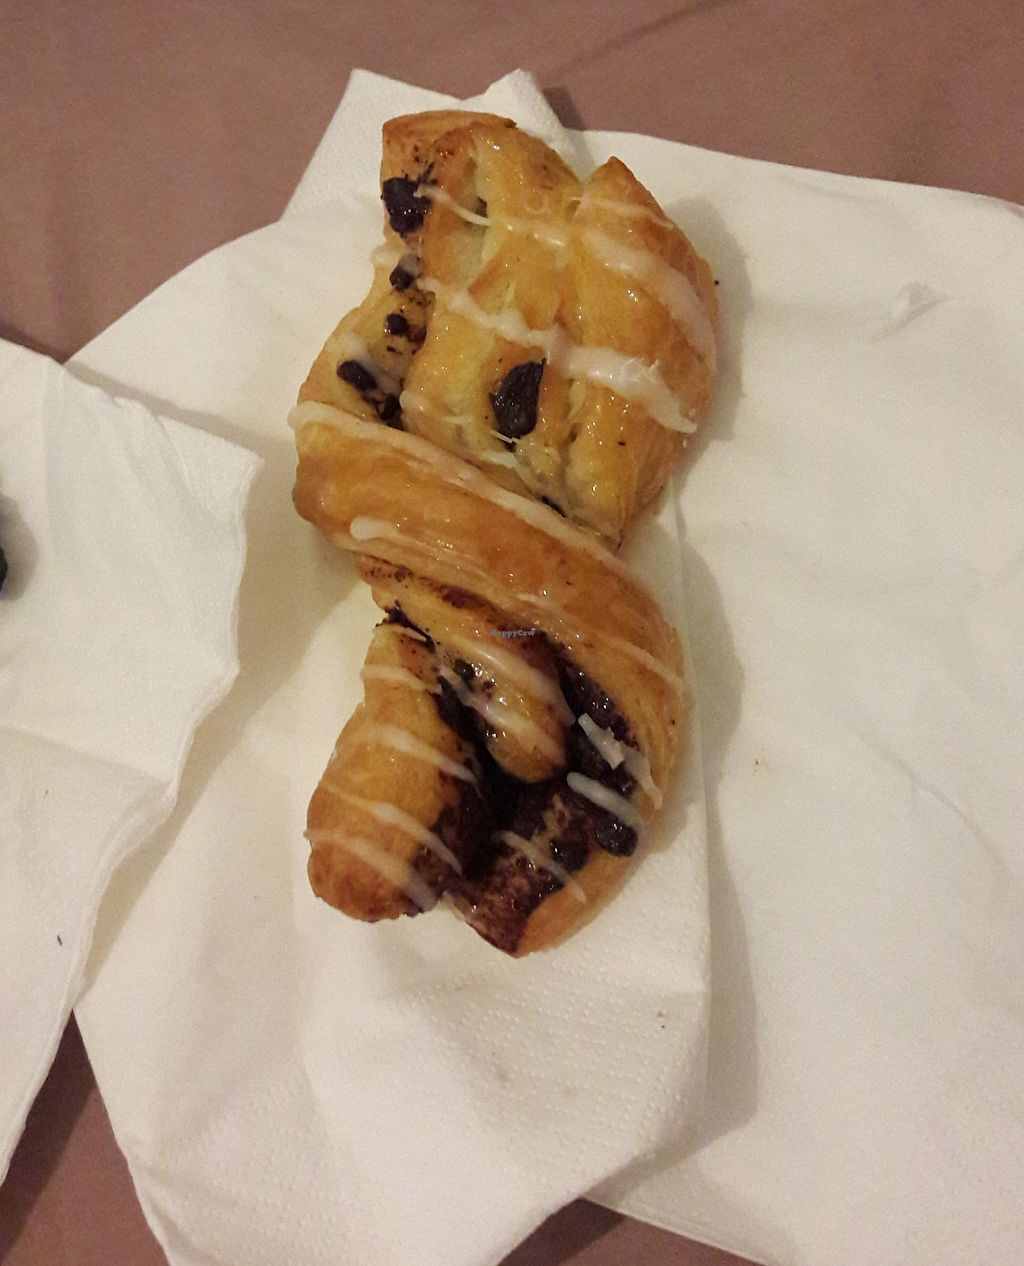 """Photo of Enoteca Radici  by <a href=""""/members/profile/jennyc32"""">jennyc32</a> <br/>Chocolate twist <br/> August 6, 2017  - <a href='/contact/abuse/image/84555/289693'>Report</a>"""